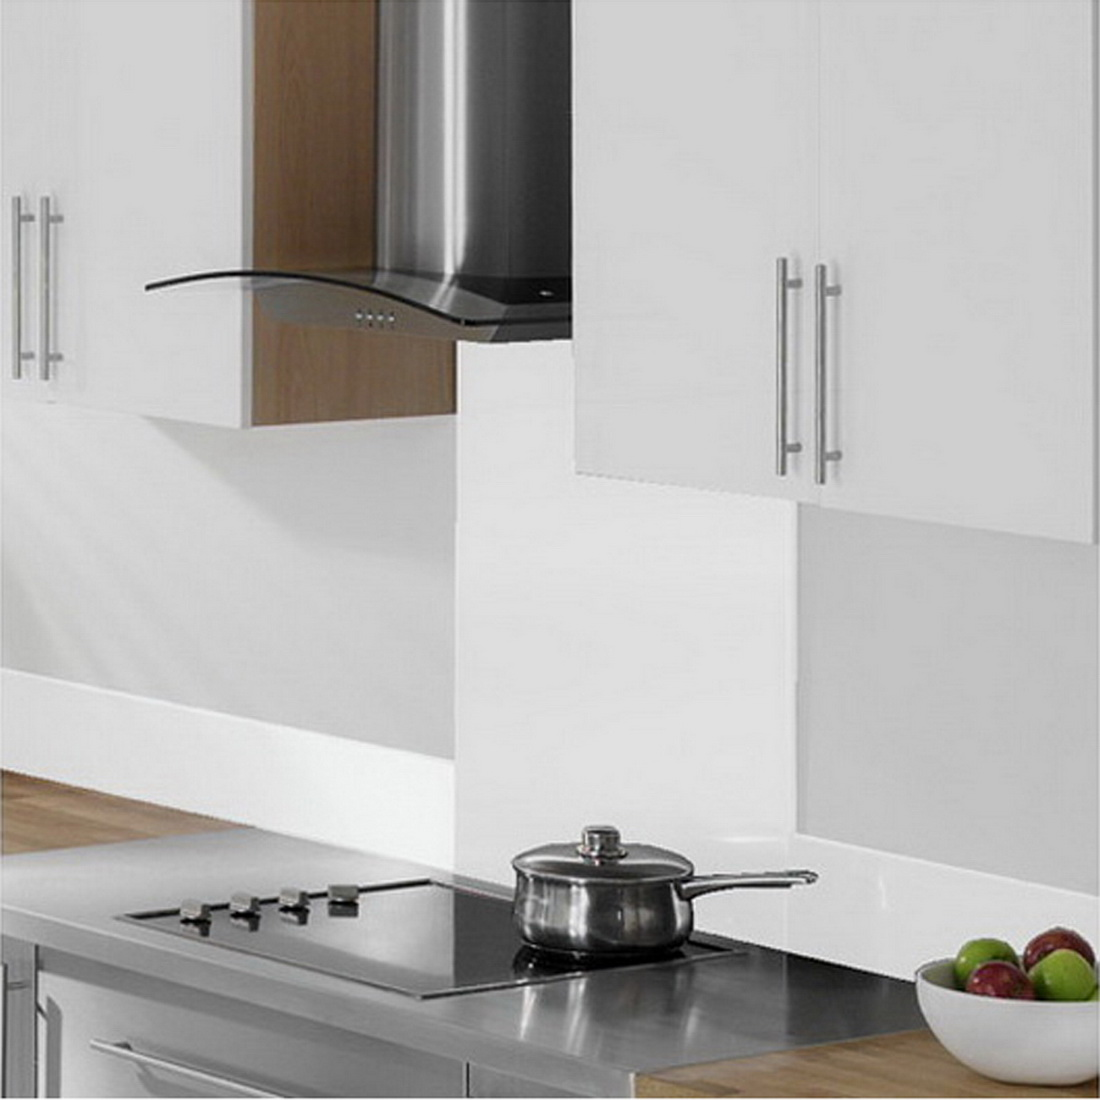 Splashback 750 x 600 x 5 mm White Toughned Glass 75X6SPLASHWH